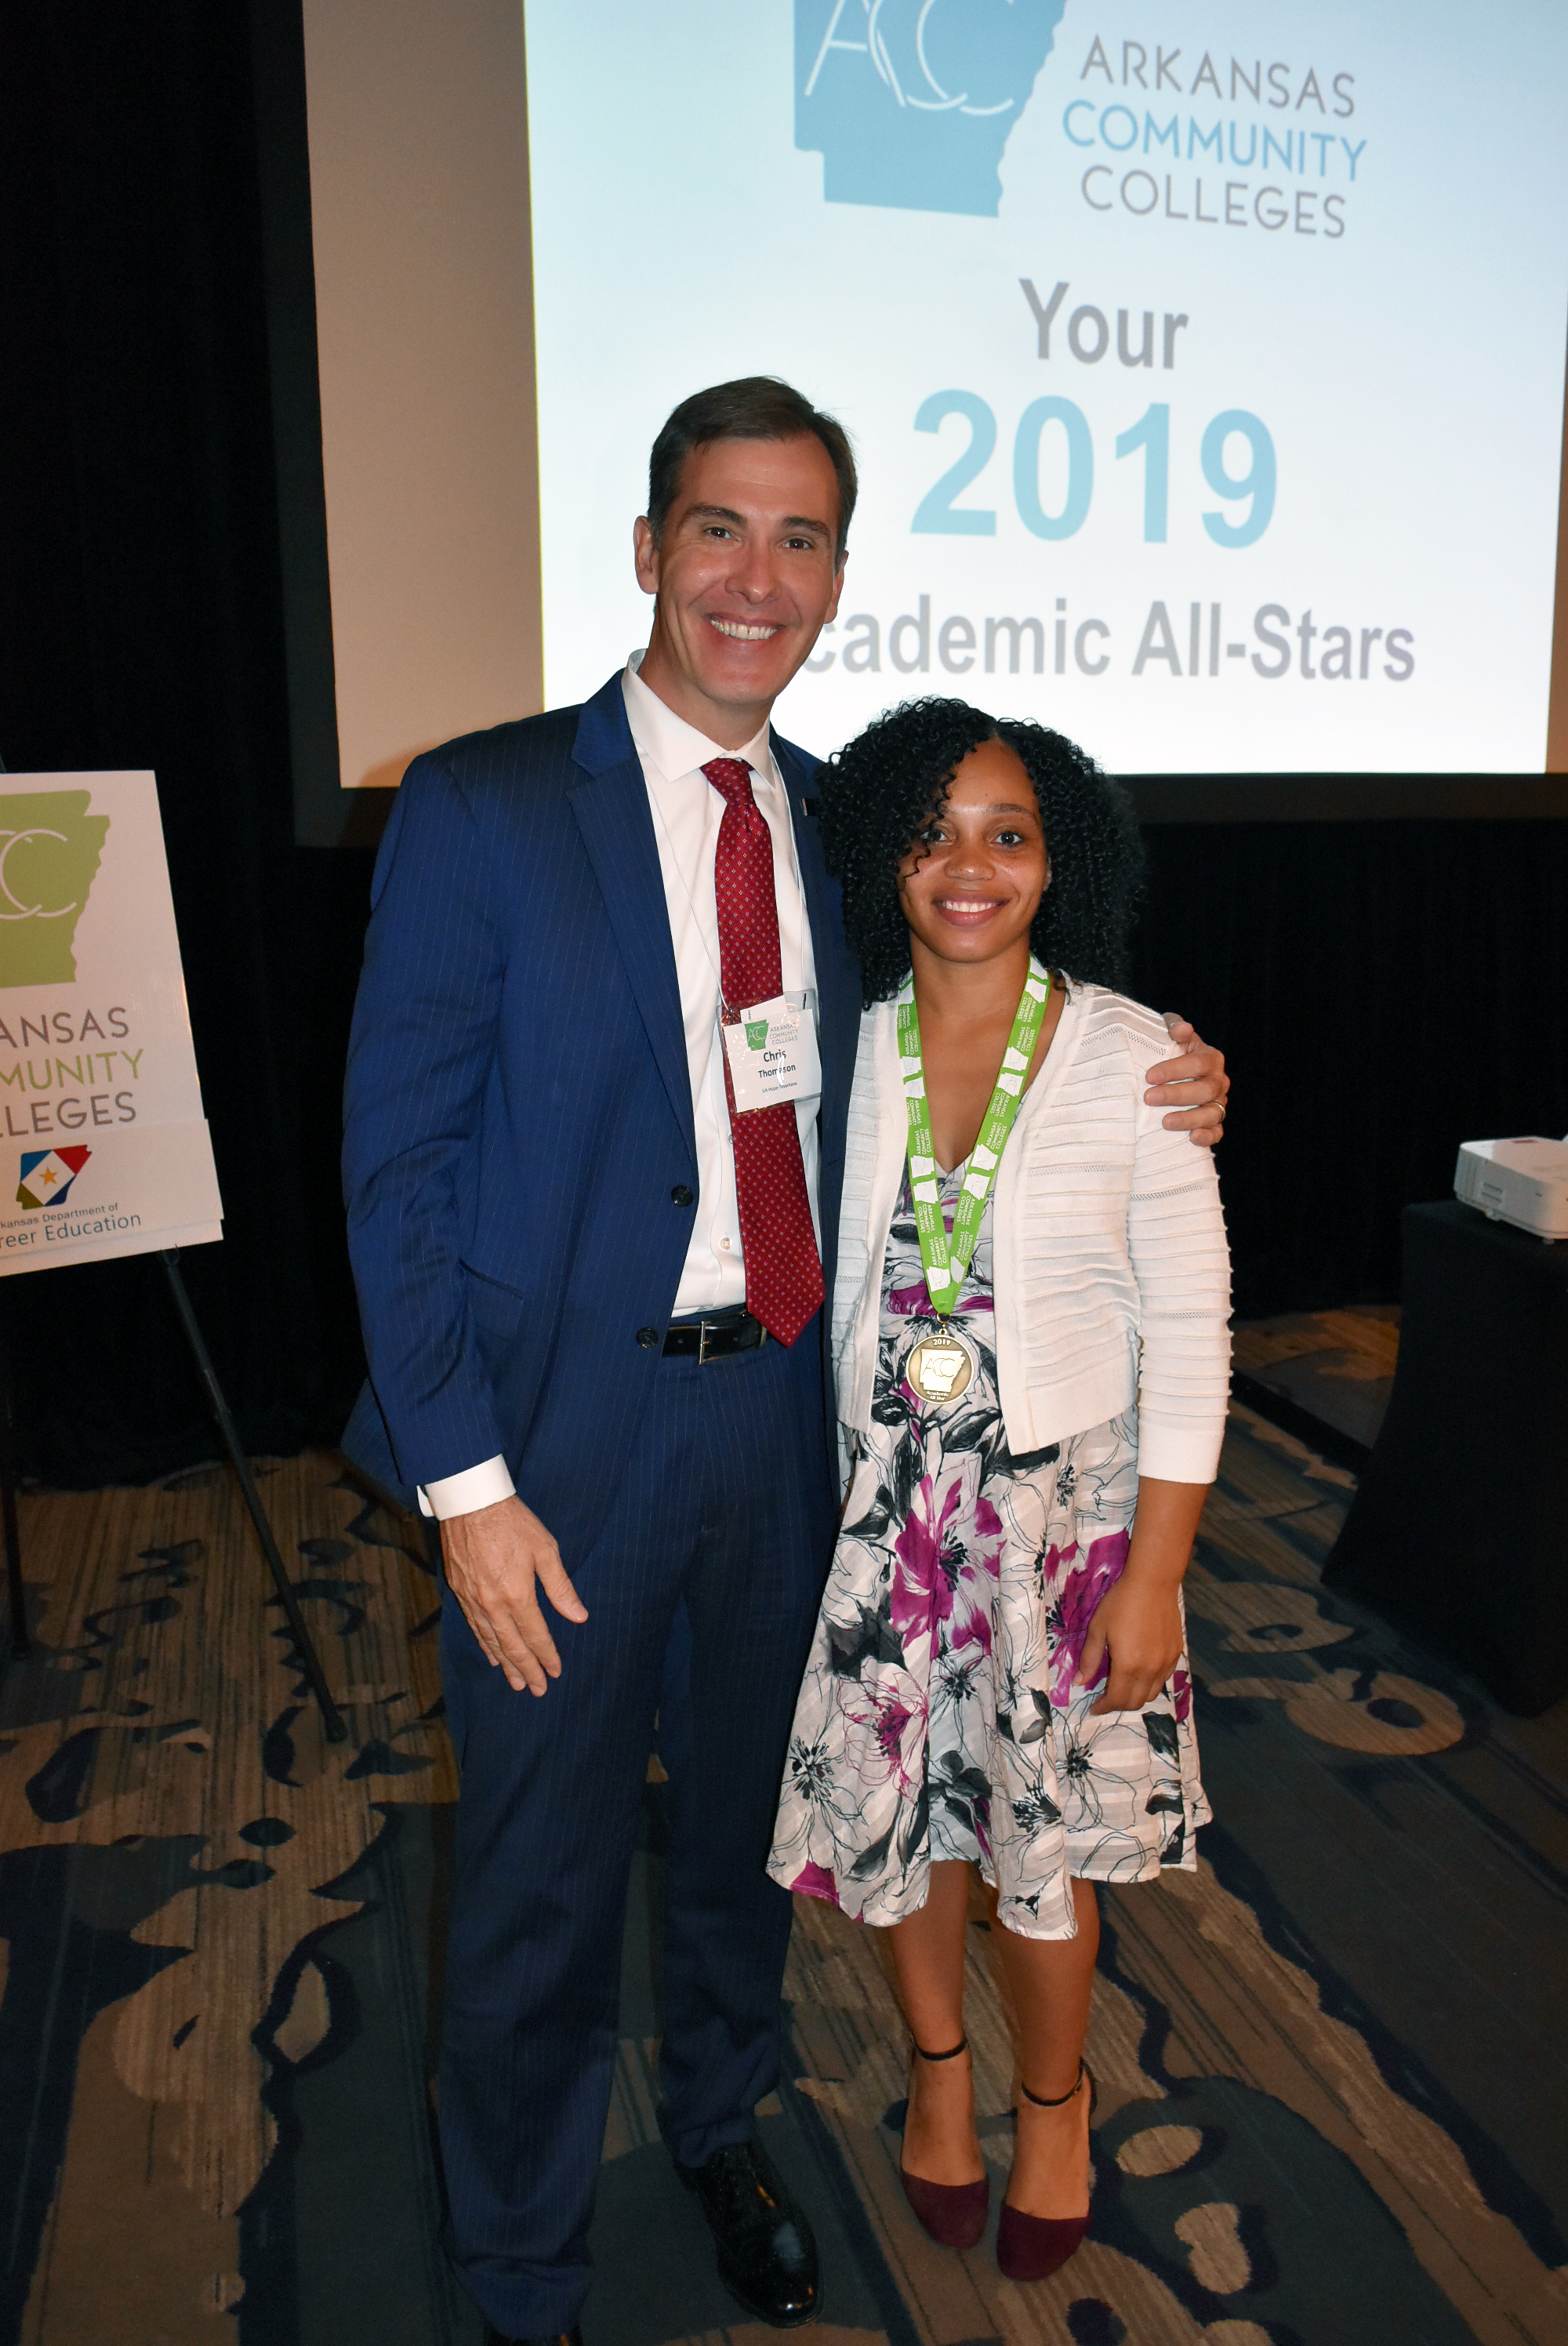 Pictured left to right:  Chris Thomason, UAHT Chancellor and Kalesha Parrish, UAHT Academic All-Star